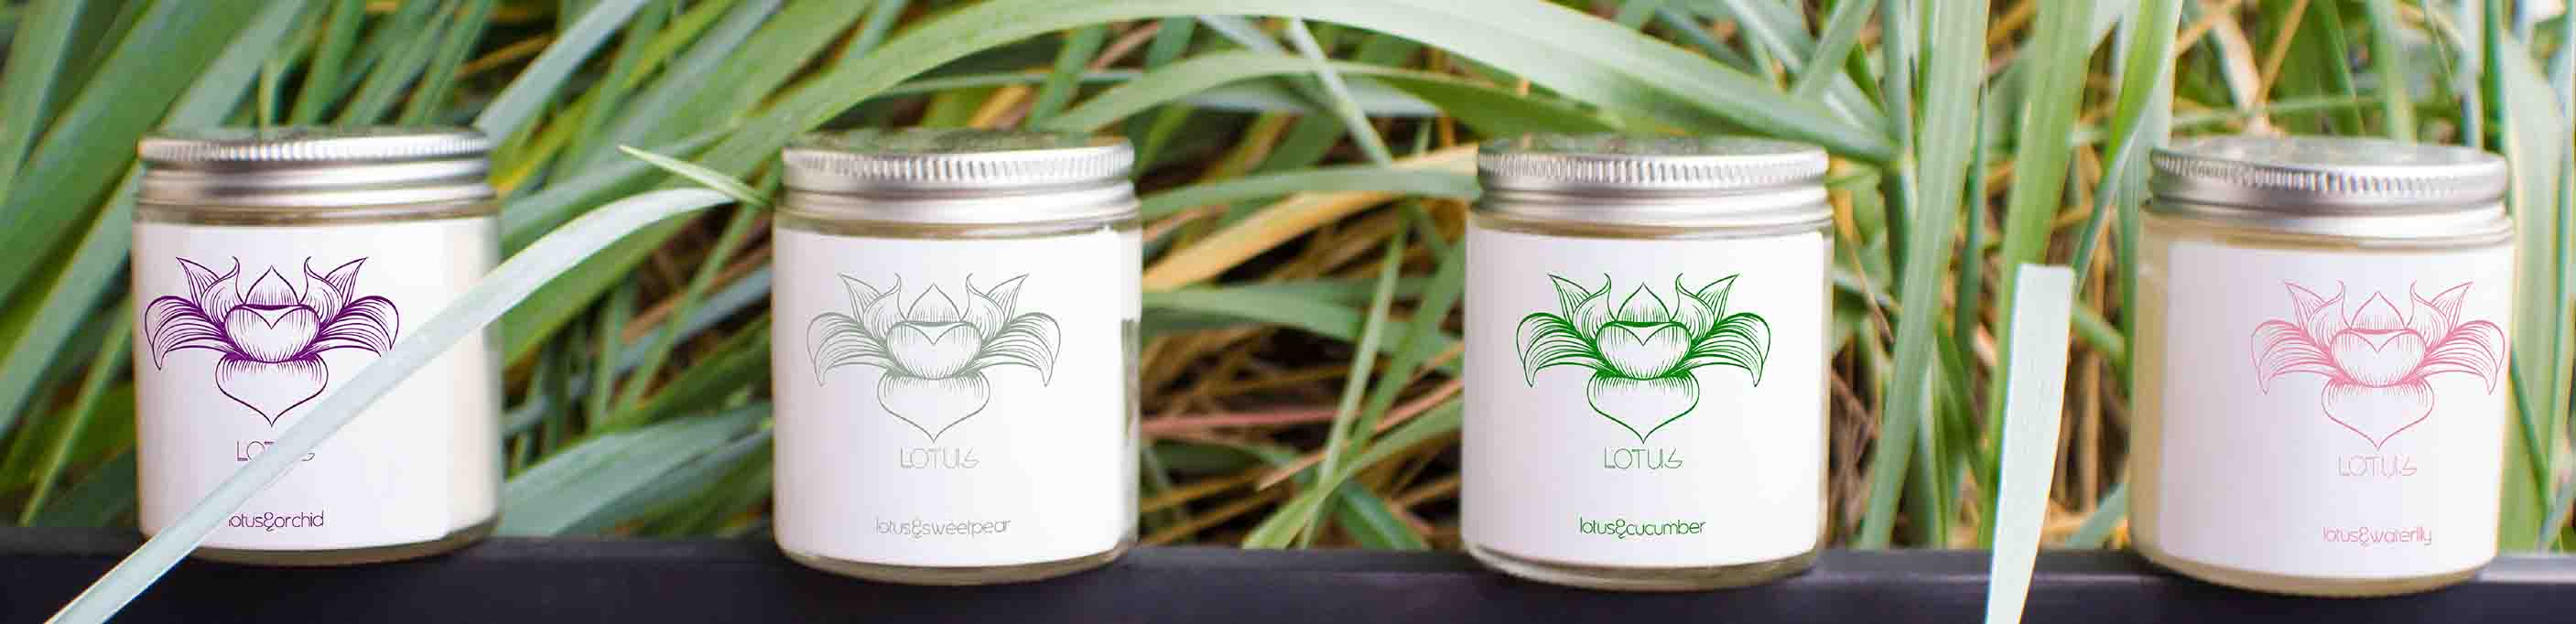 Candle Jars - Larger Sizes - Cream Round